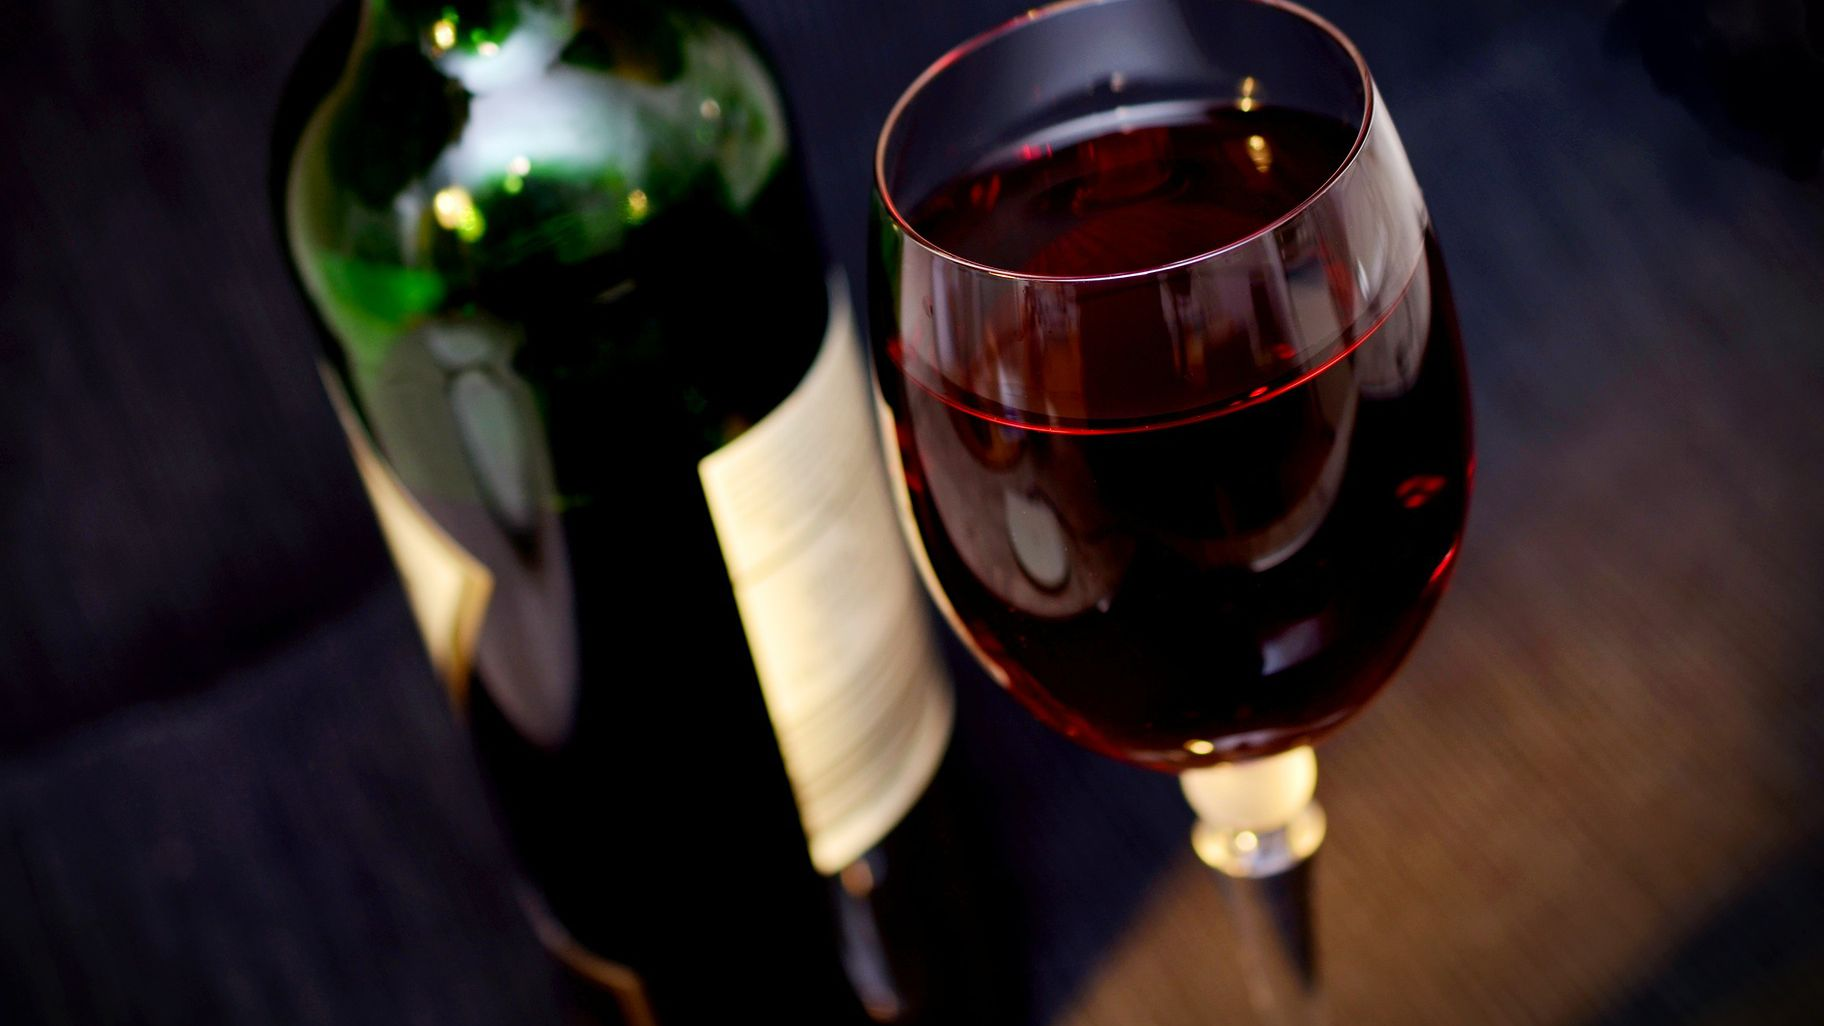 Virginia for wine lovers? Carytown Kroger tops chain's wine sales